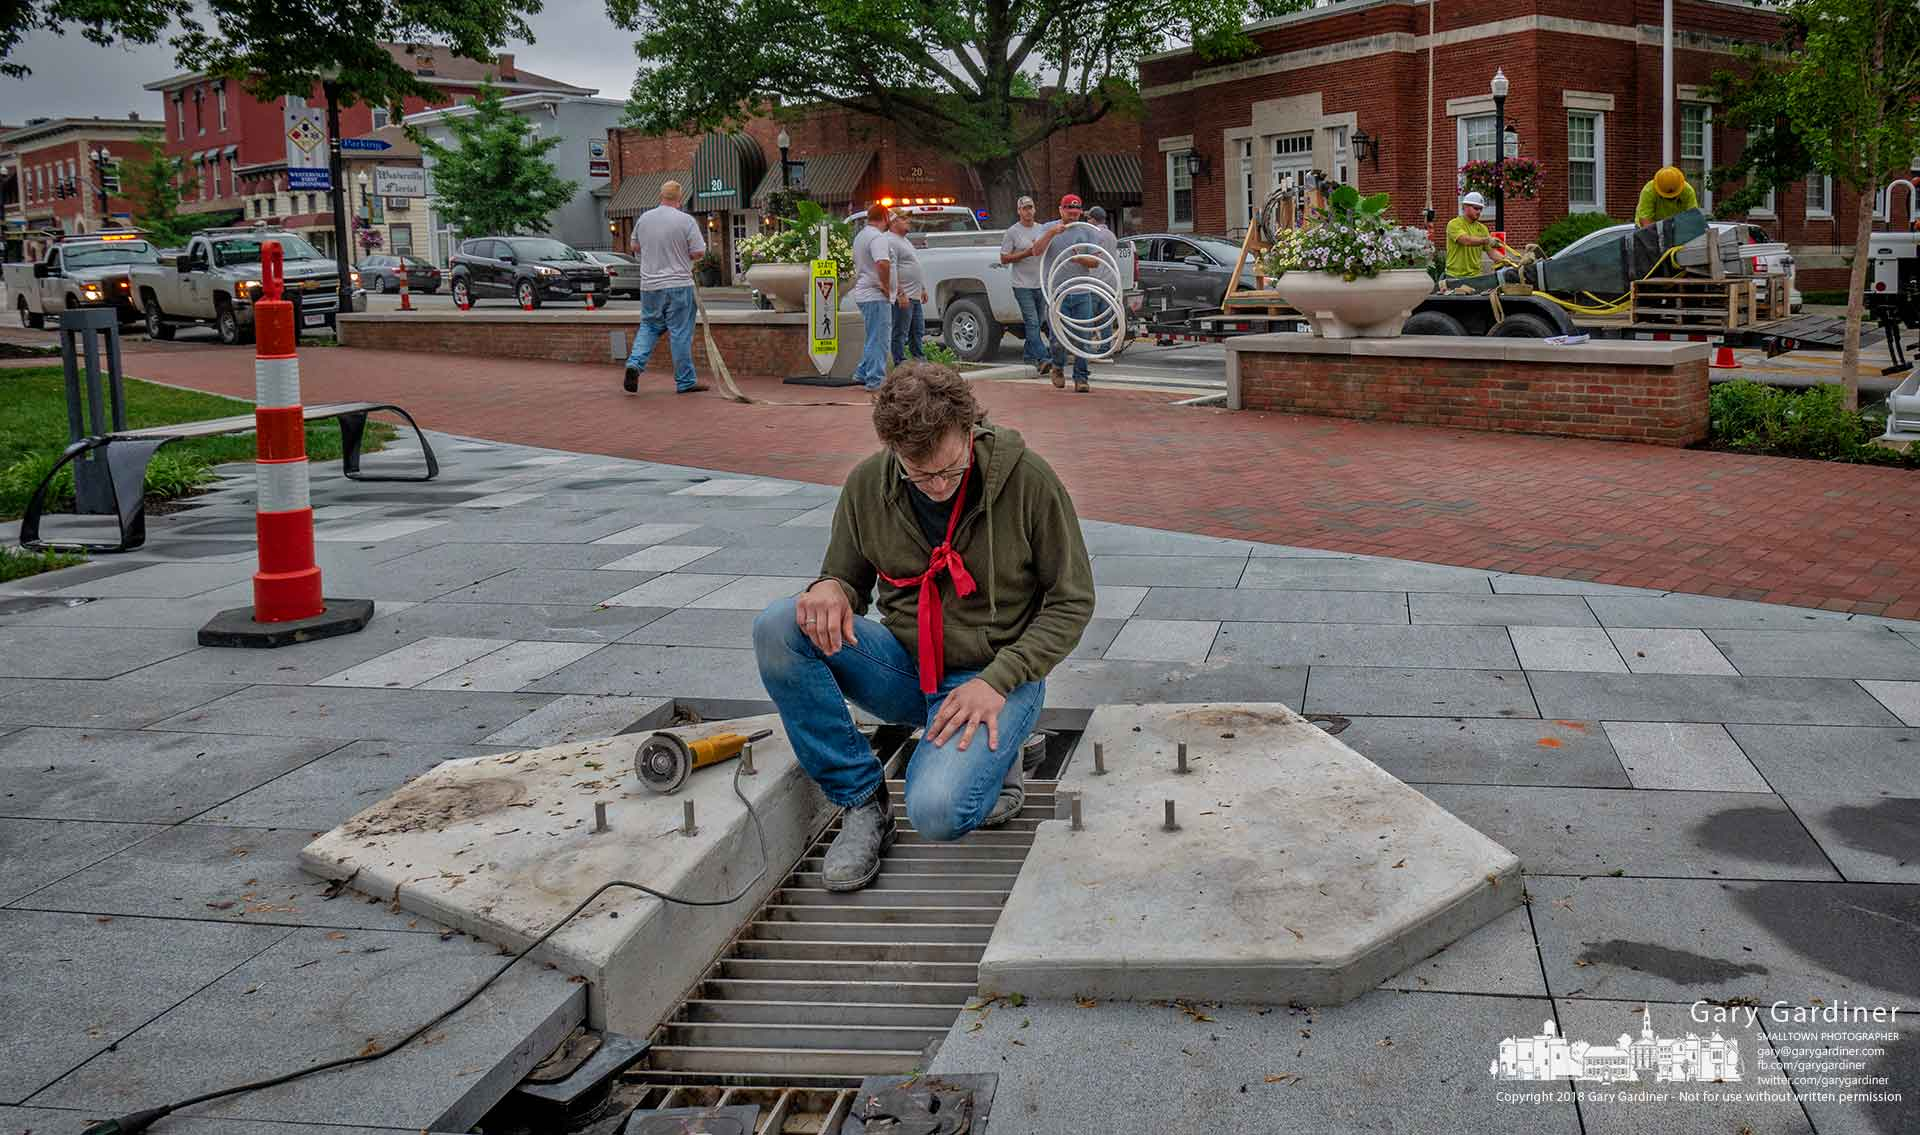 """Artist Mathew Gray Palmer inspects a section of the mount where his sculpture """"The American Issue"""" will be installedin the courtyardin front of city hall. My Final Photo for June 13, 2018."""